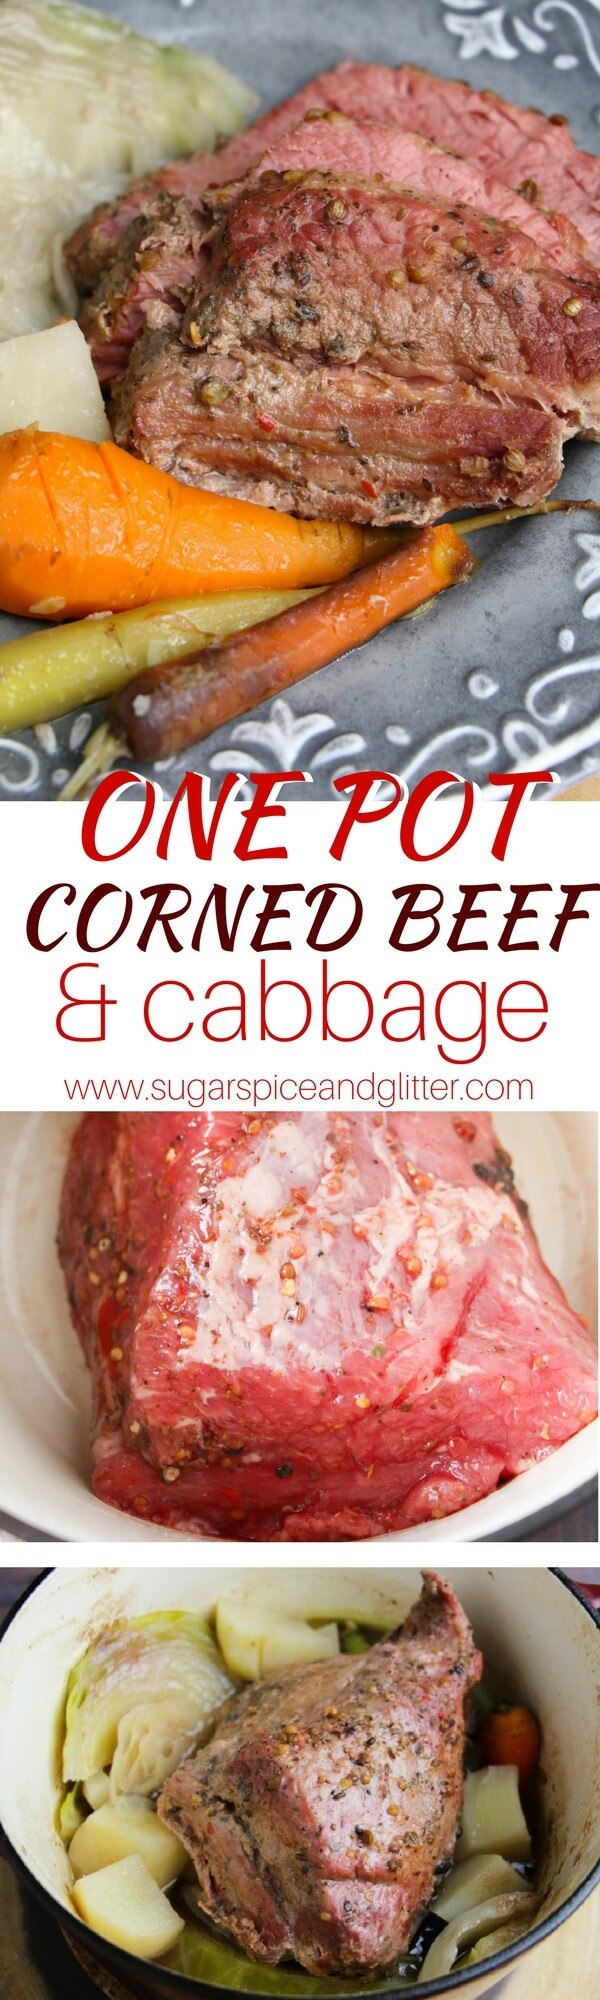 A One Pot Corned Beef and Cabbage recipe perfect for New Year's, Saint Patrick's Day or just a special Irish supper!